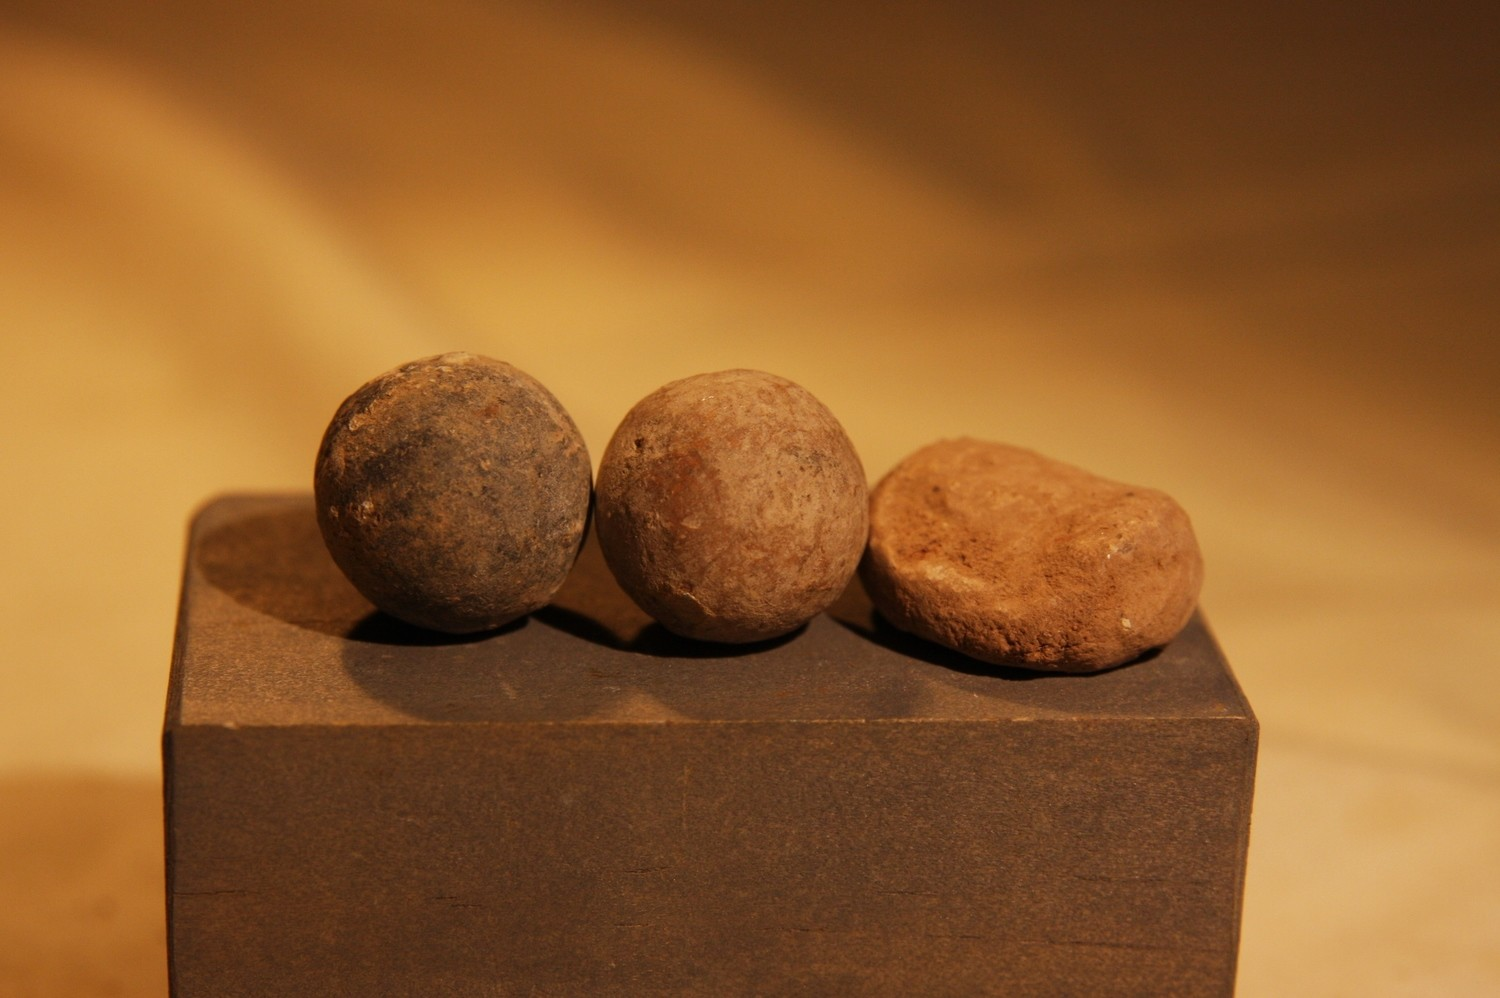 JUST ADDED ON 2/27 - 1861-1862 ZOUAVE WINTER CAMP NEAR POOLESVILLE, MD - Three .69 Caliber Musket Balls